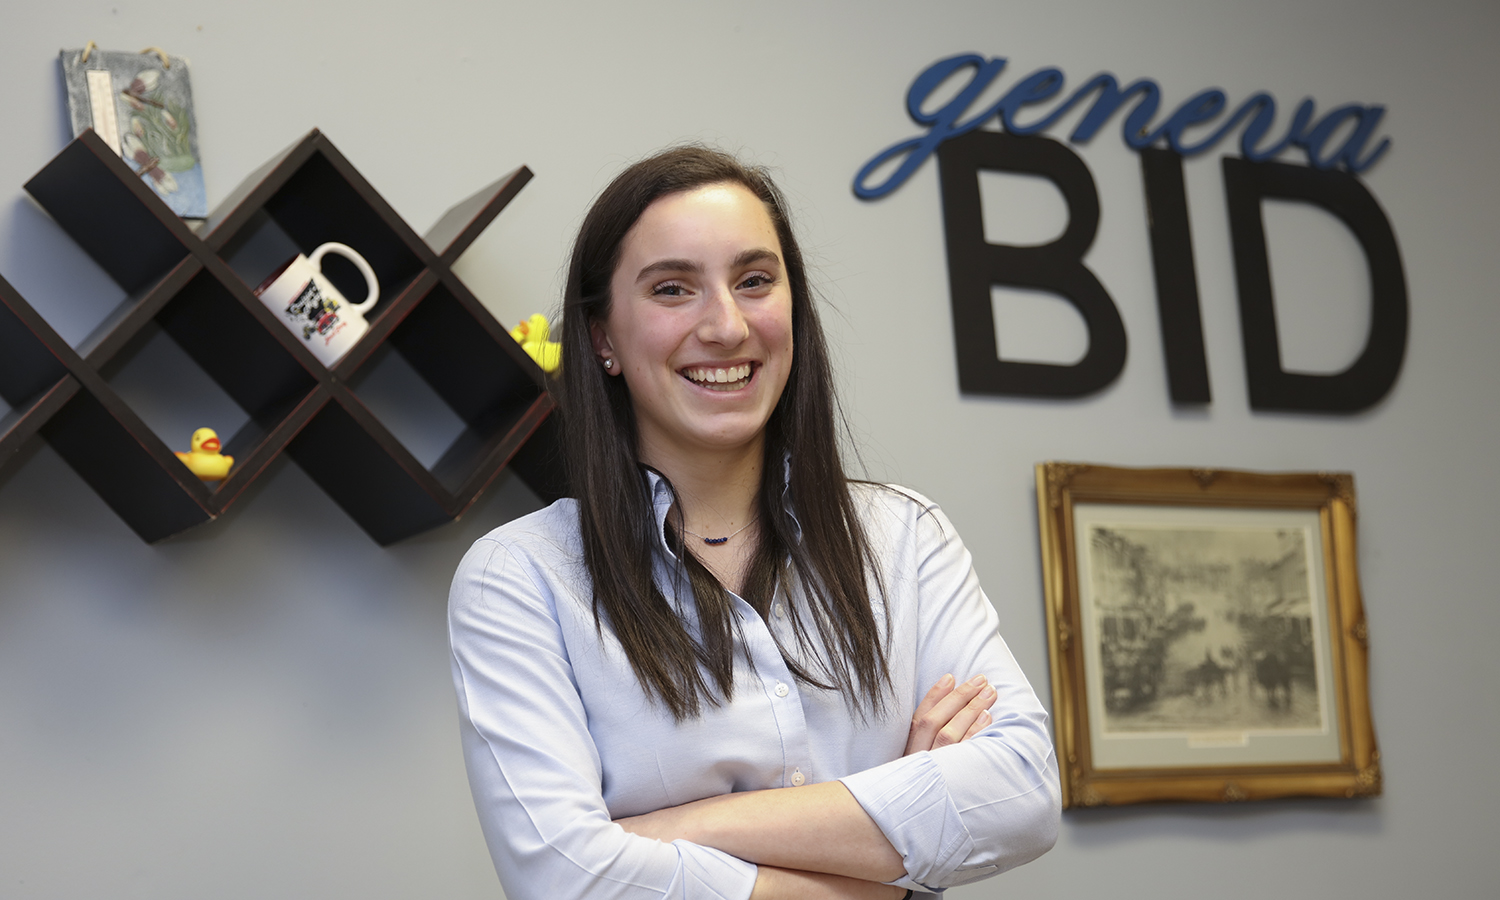 """Peggy Wagner '21 poses in the Geneva Business Improvement District (BID) Office. Wagner is spending her summer interning for the BID and preparing for """"Curisin' Night"""", a large festival held in Geenva, N.Y. This year the event will be held on Friday, July 27th."""